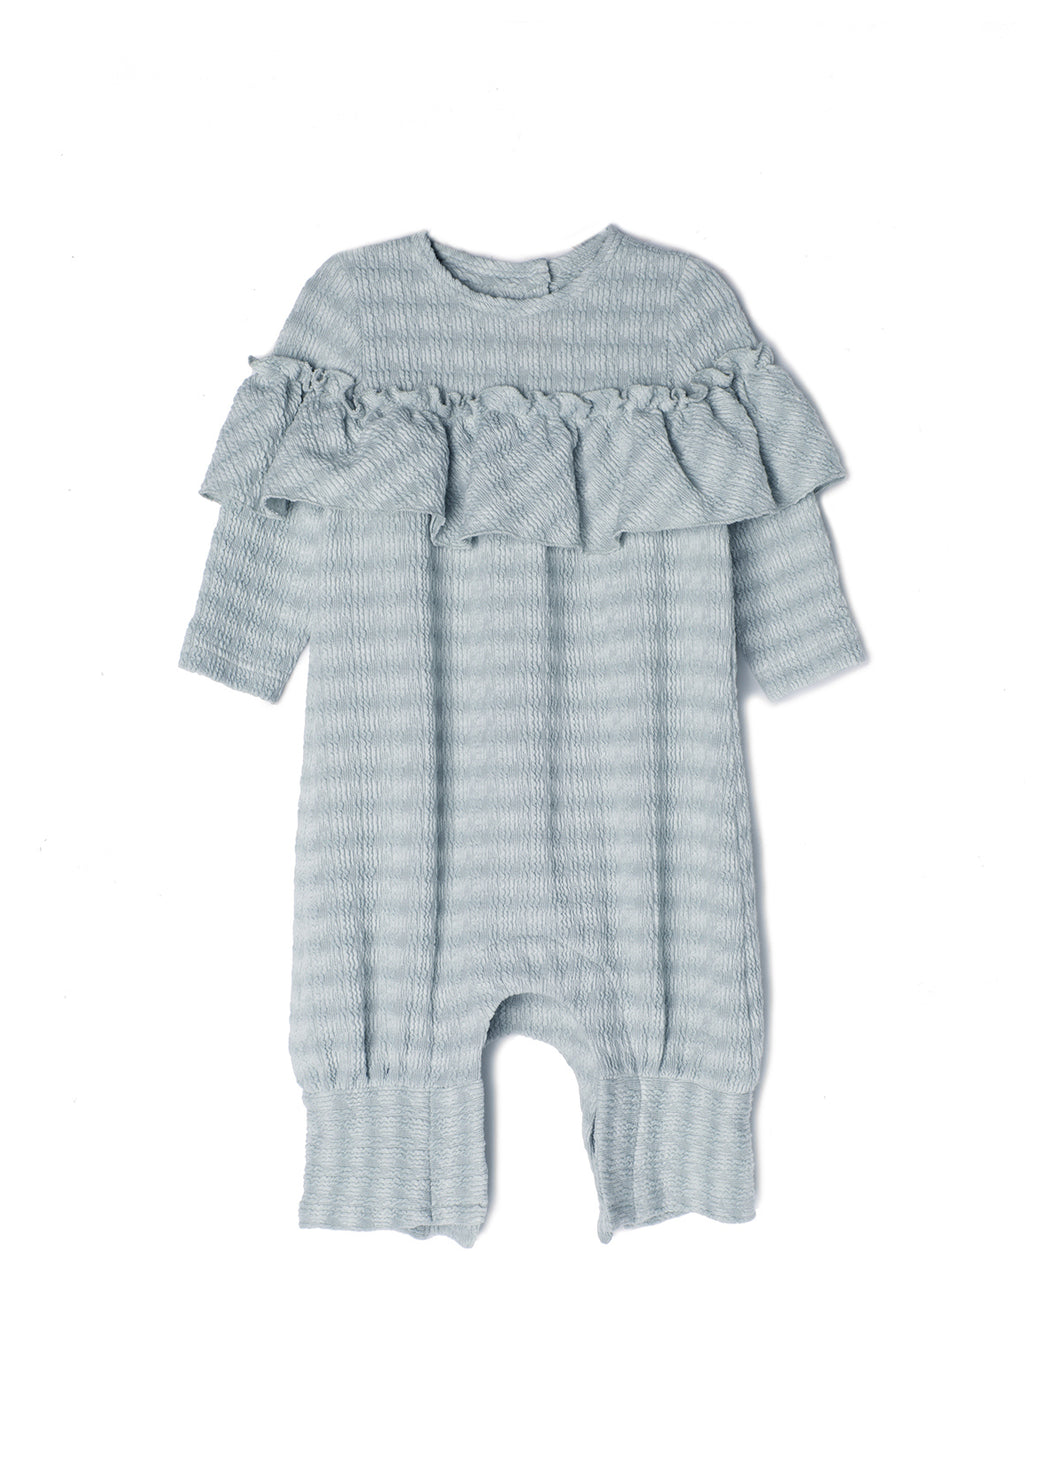 Isobella and Chloe Marley Romper - Grey - Bloom Kids Collection - Isobella and Chloe